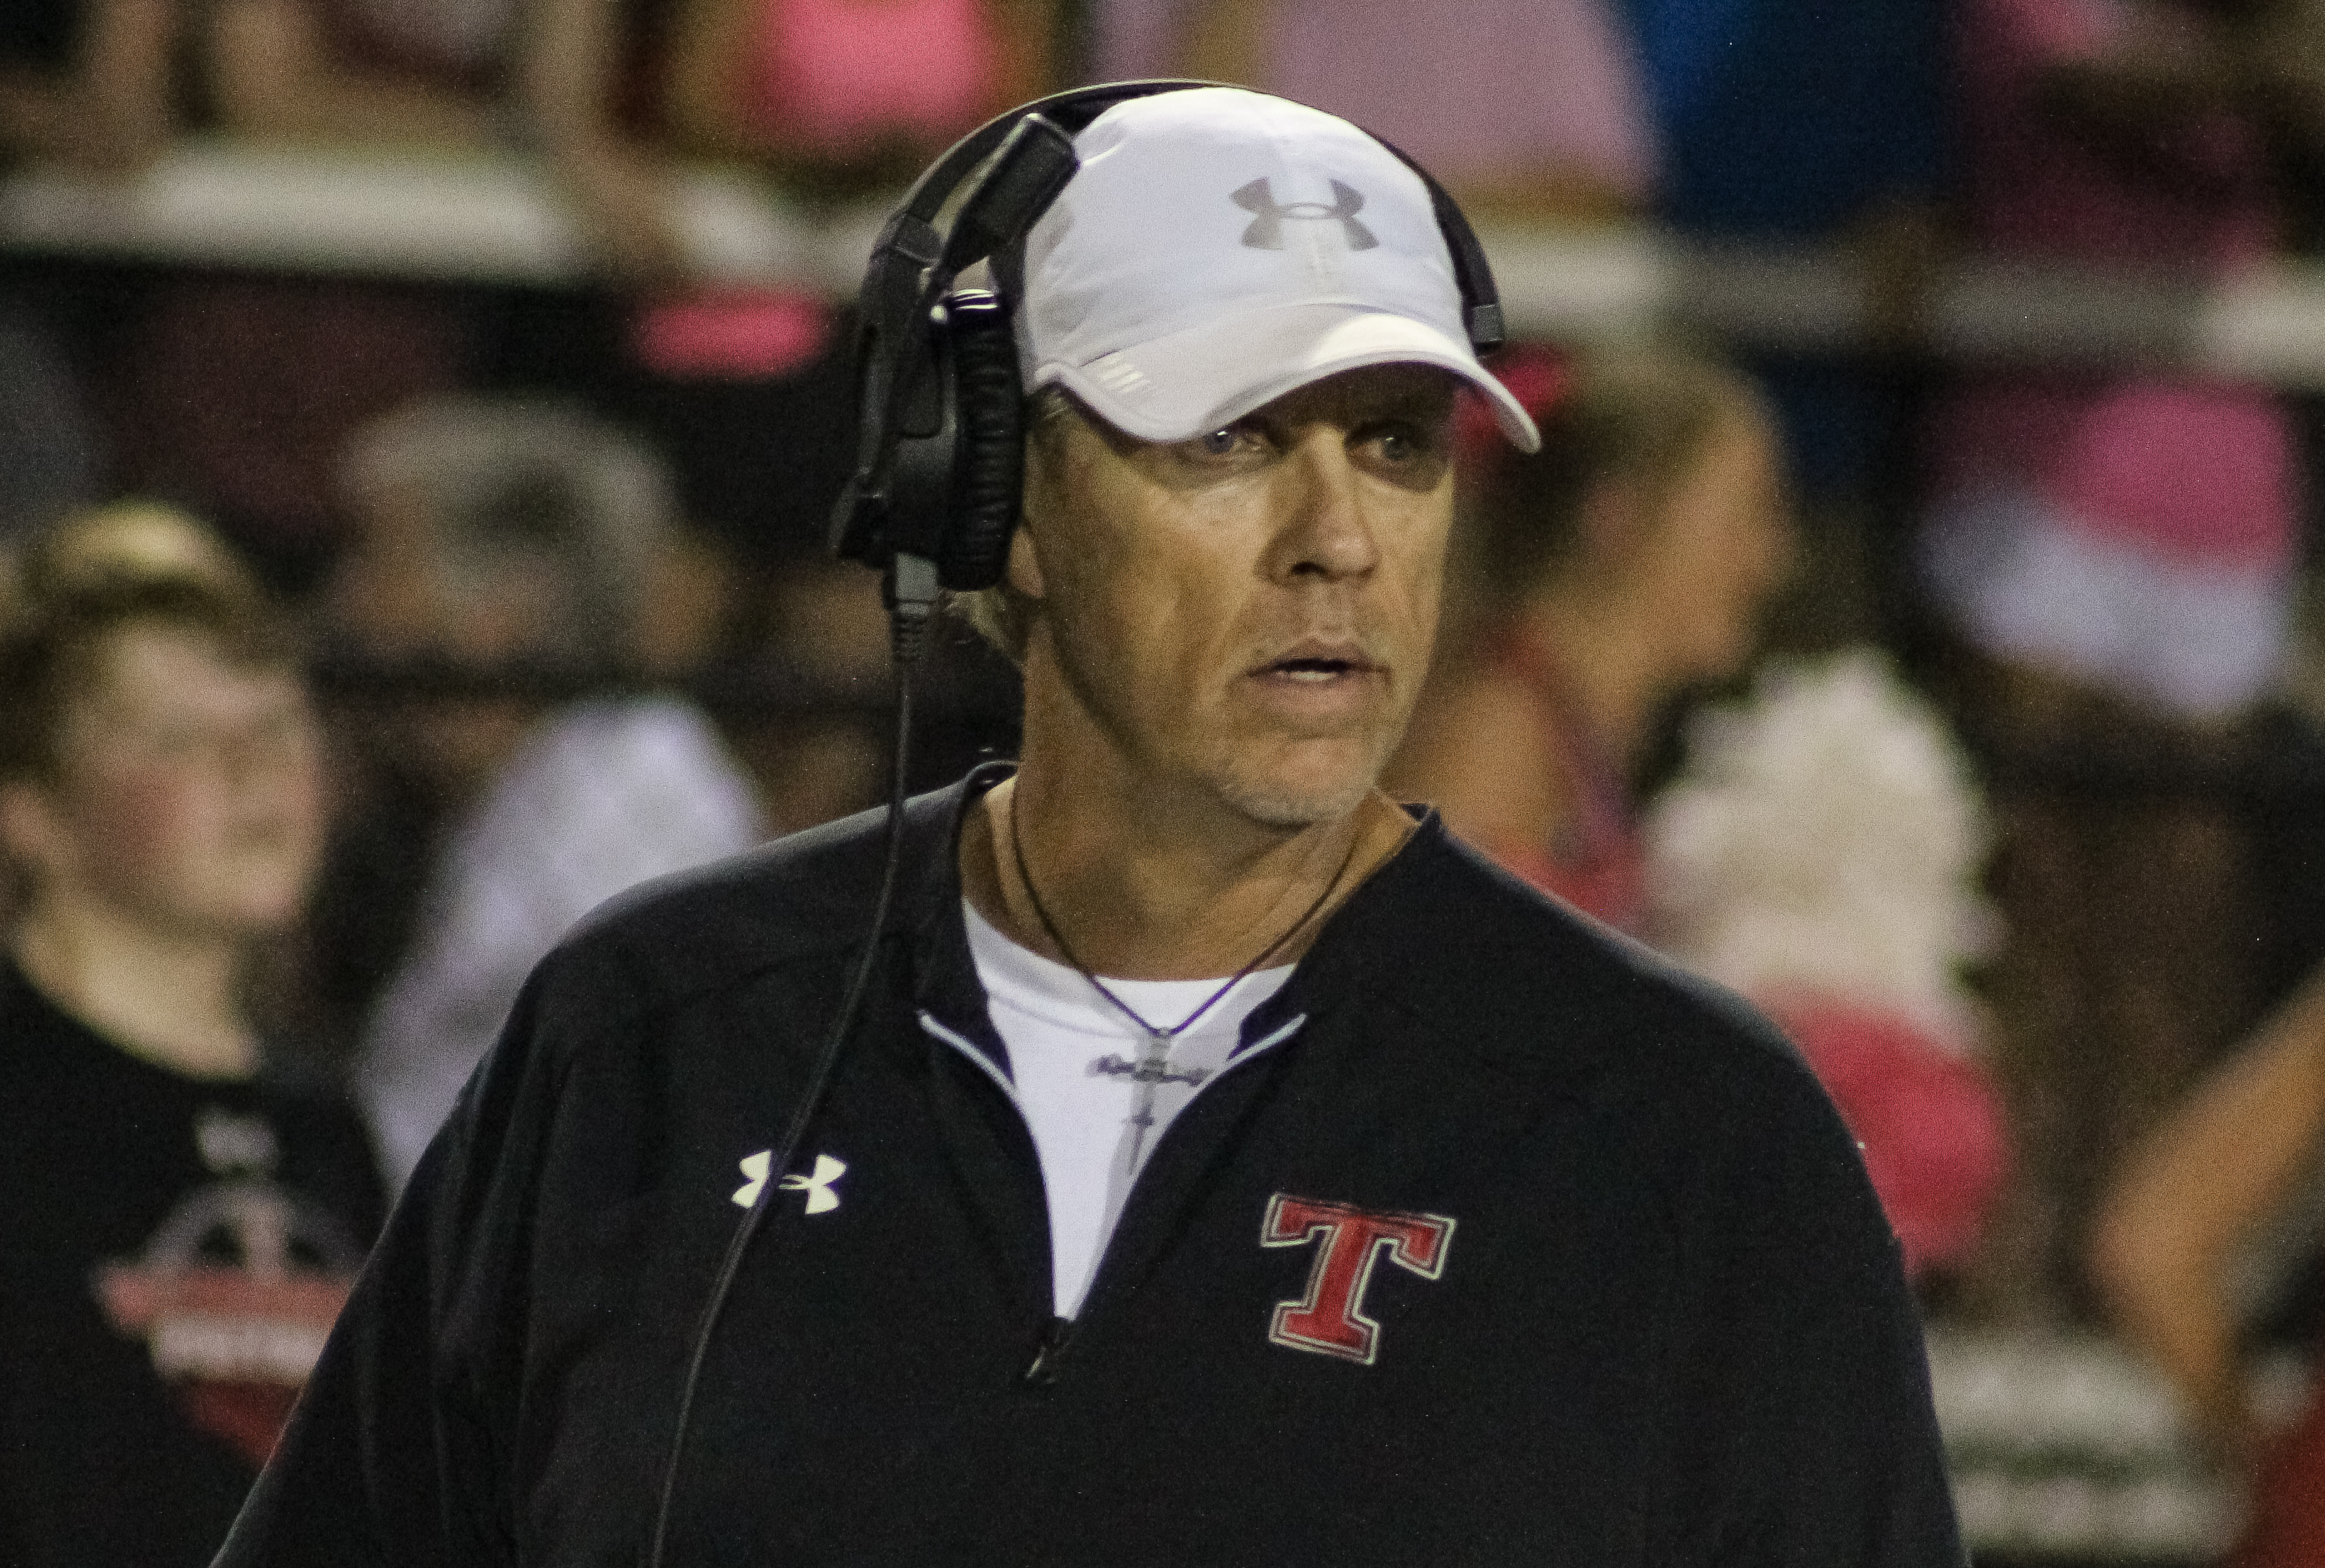 Thompson head coach Mark Freeman